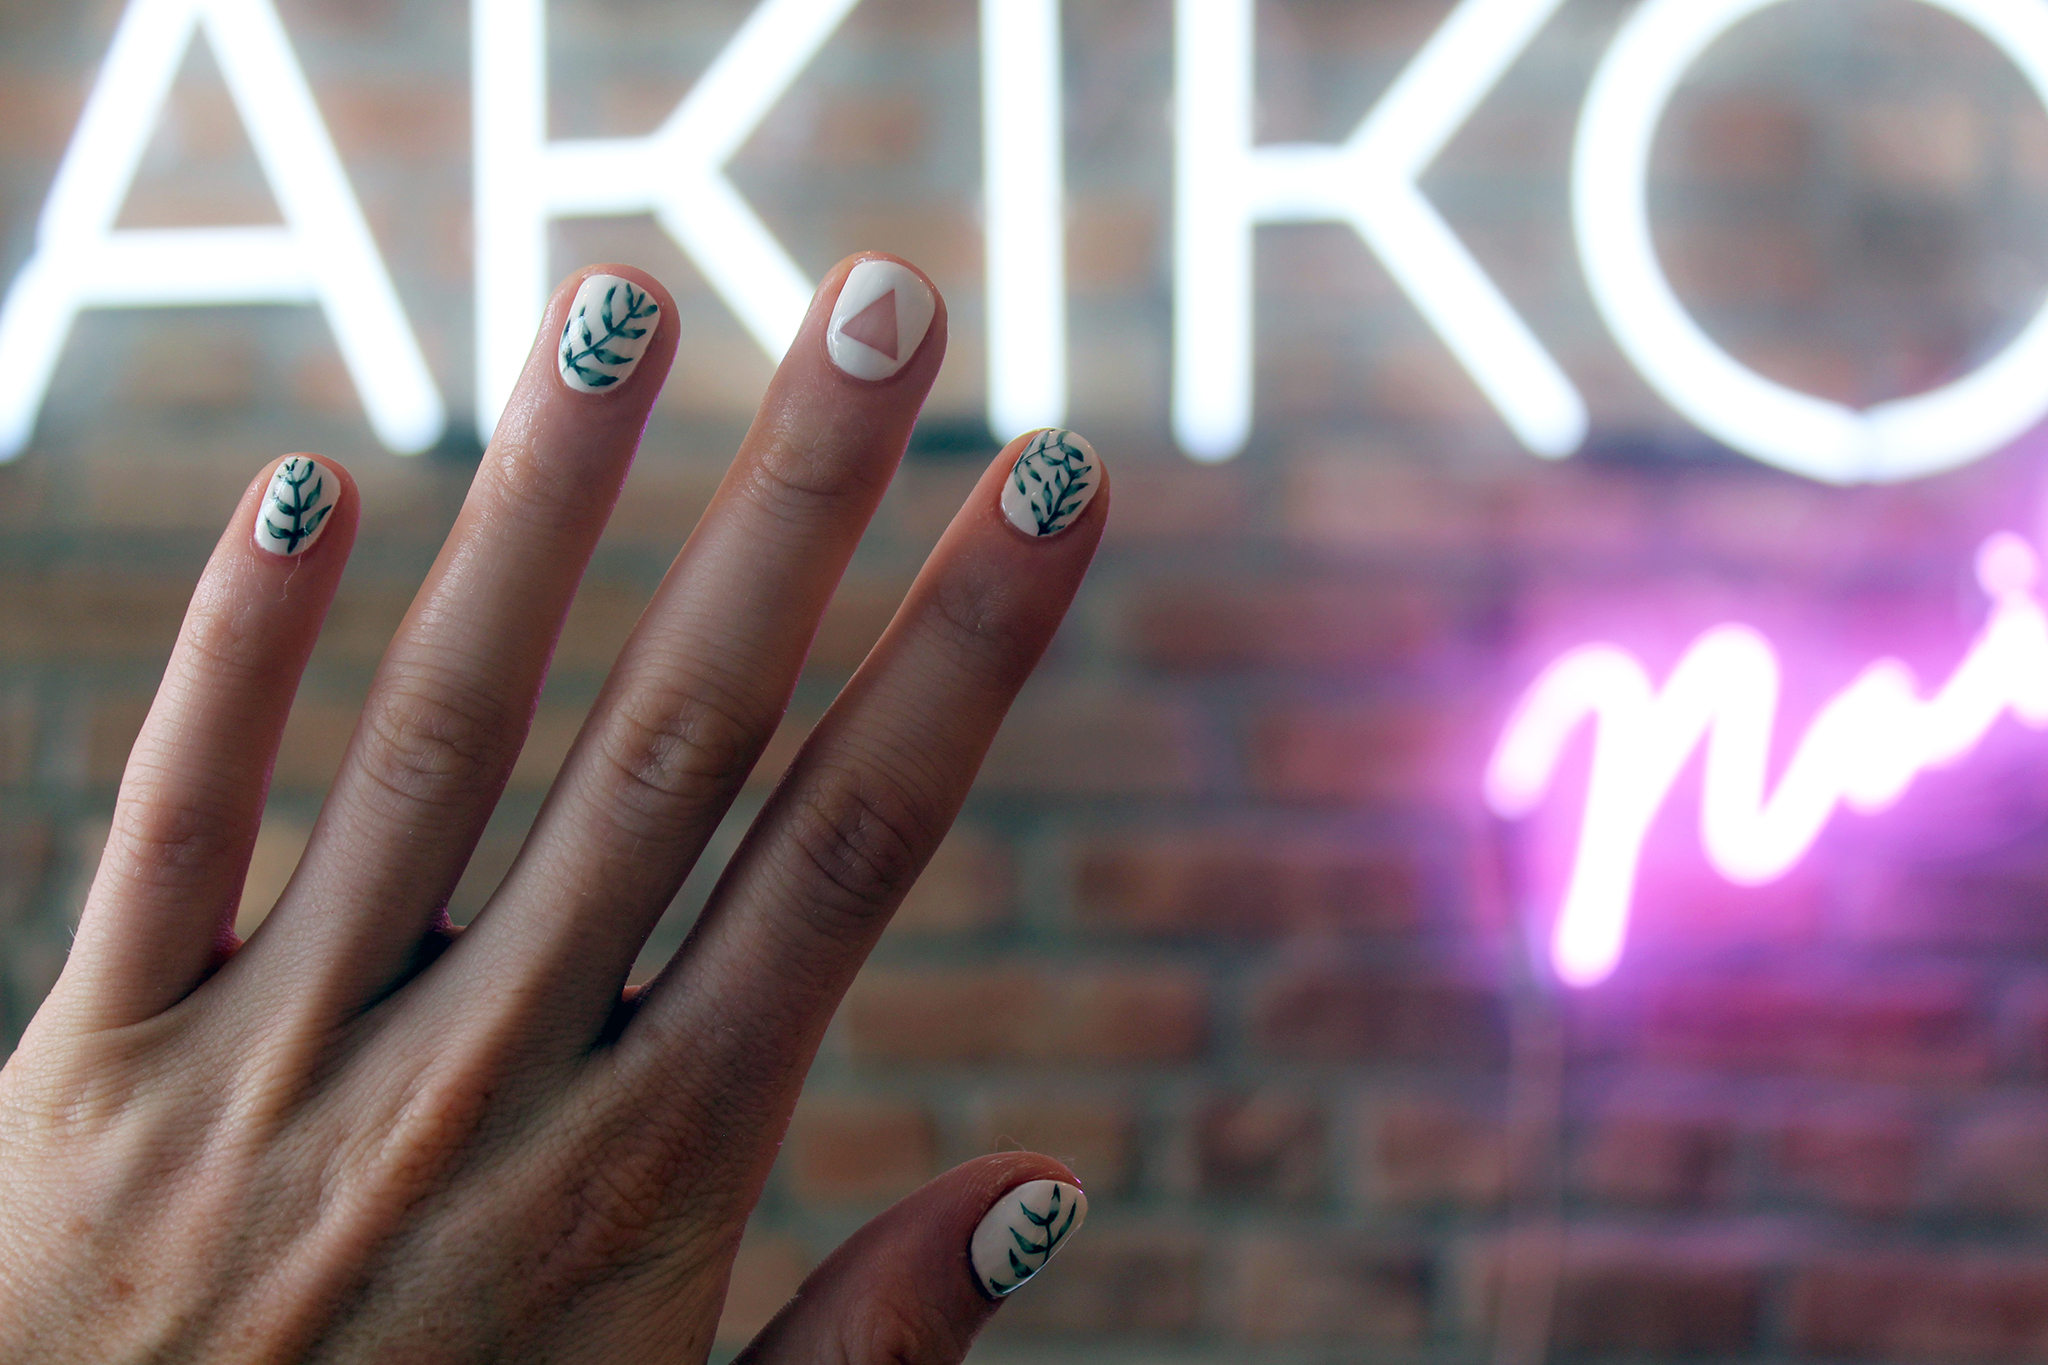 Nail salons in nyc for manicures pedicures and nail designs akiko nails prinsesfo Gallery